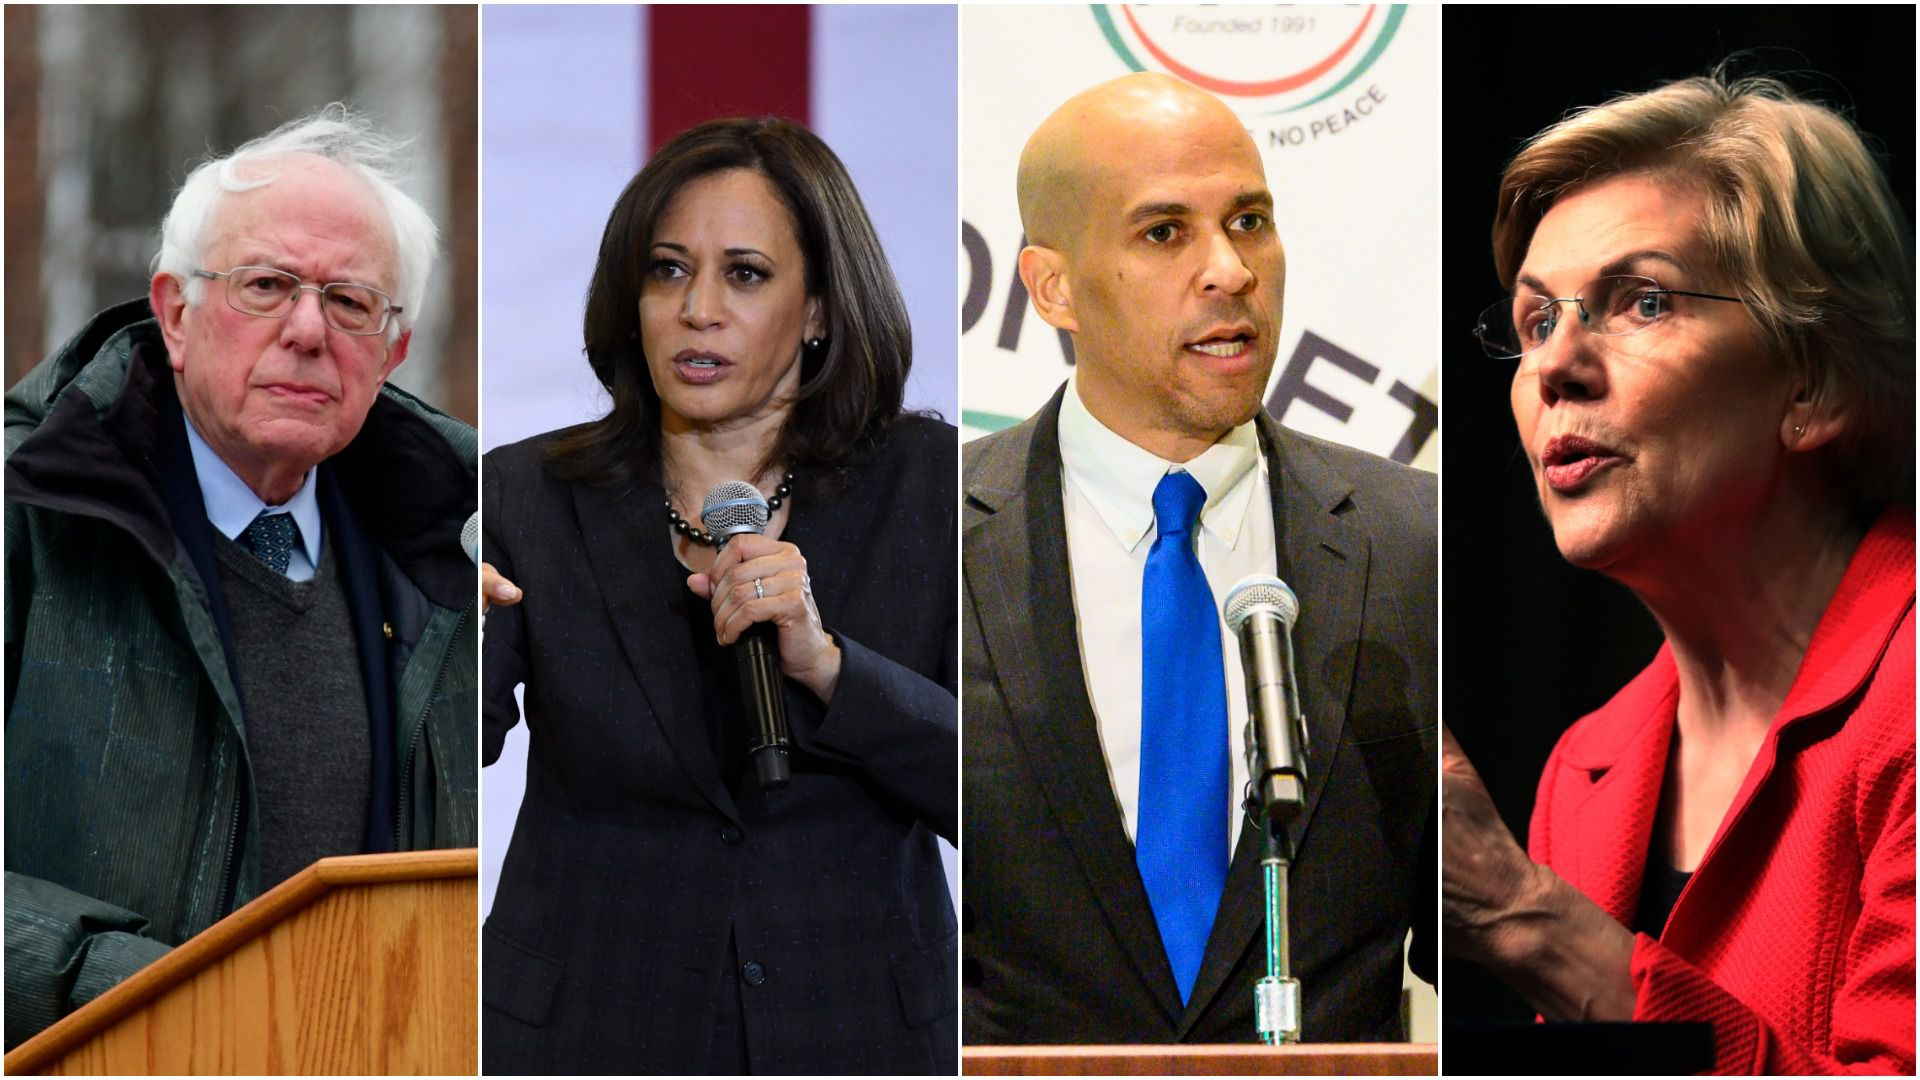 2020 Democratic presidential candidates, Senators Bernie Sanders, Kamala Harris, Cory Booker and Elizabeth Warren